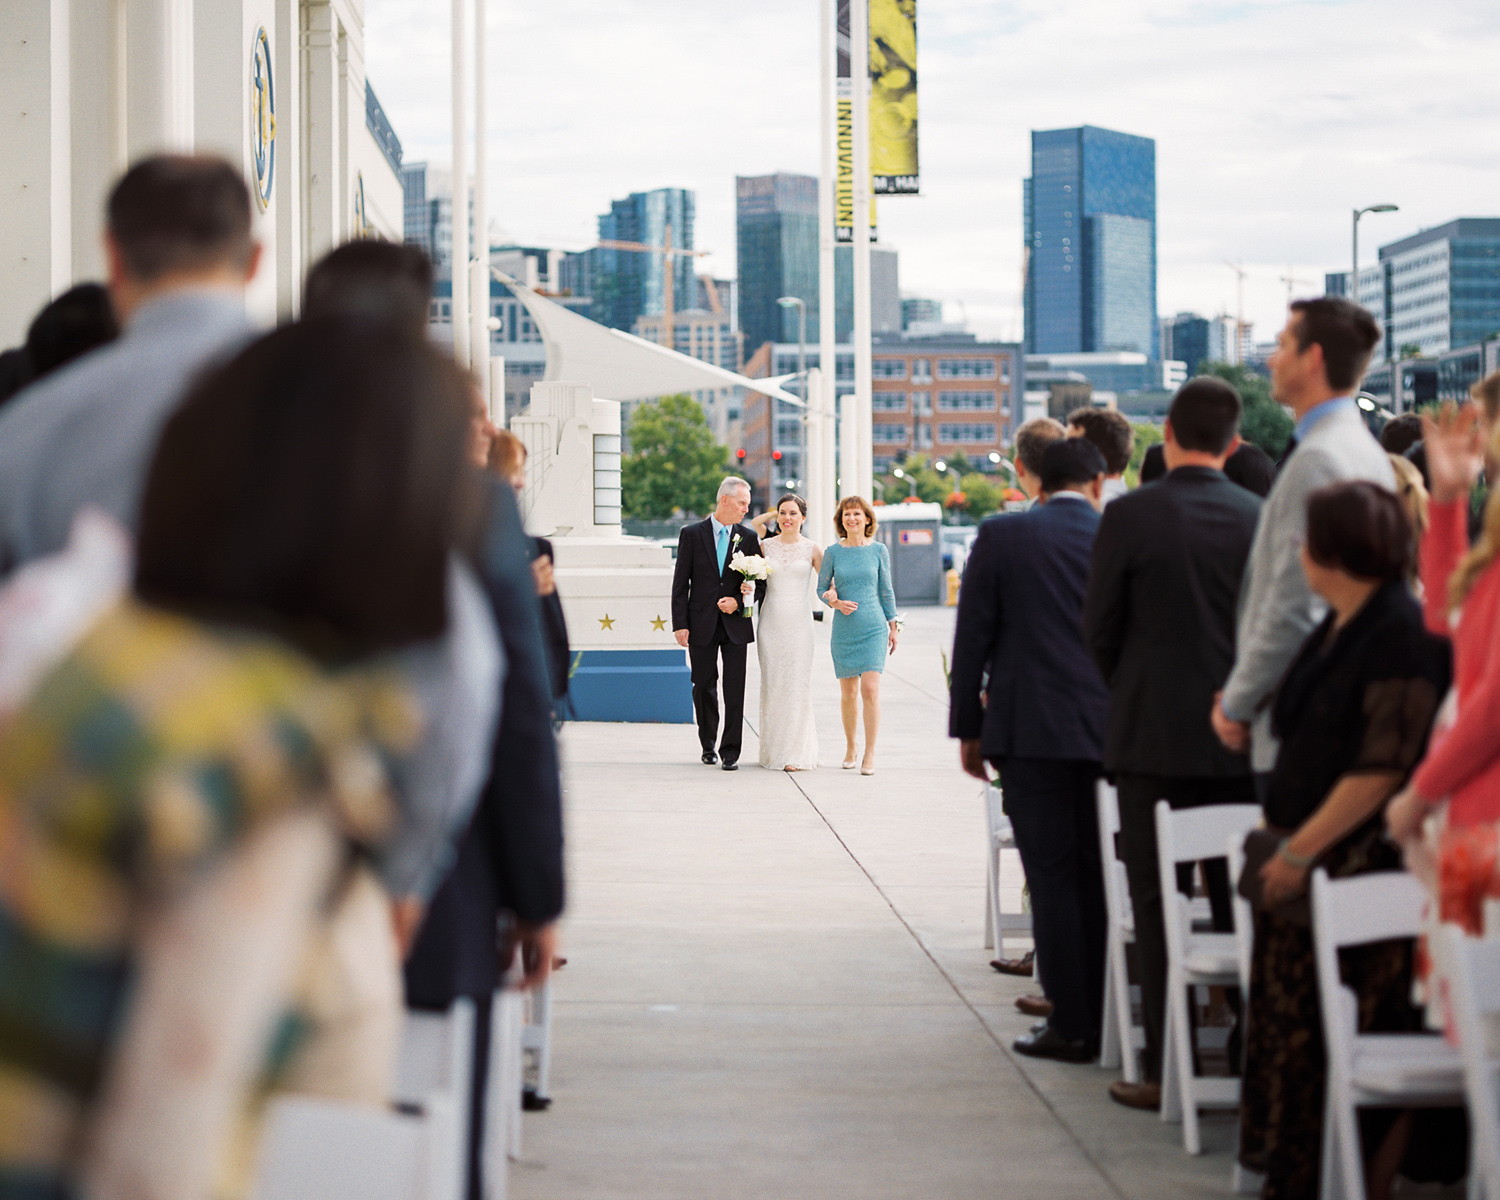 Seattle Museum of History and Industry Wedding Ceremony Photography